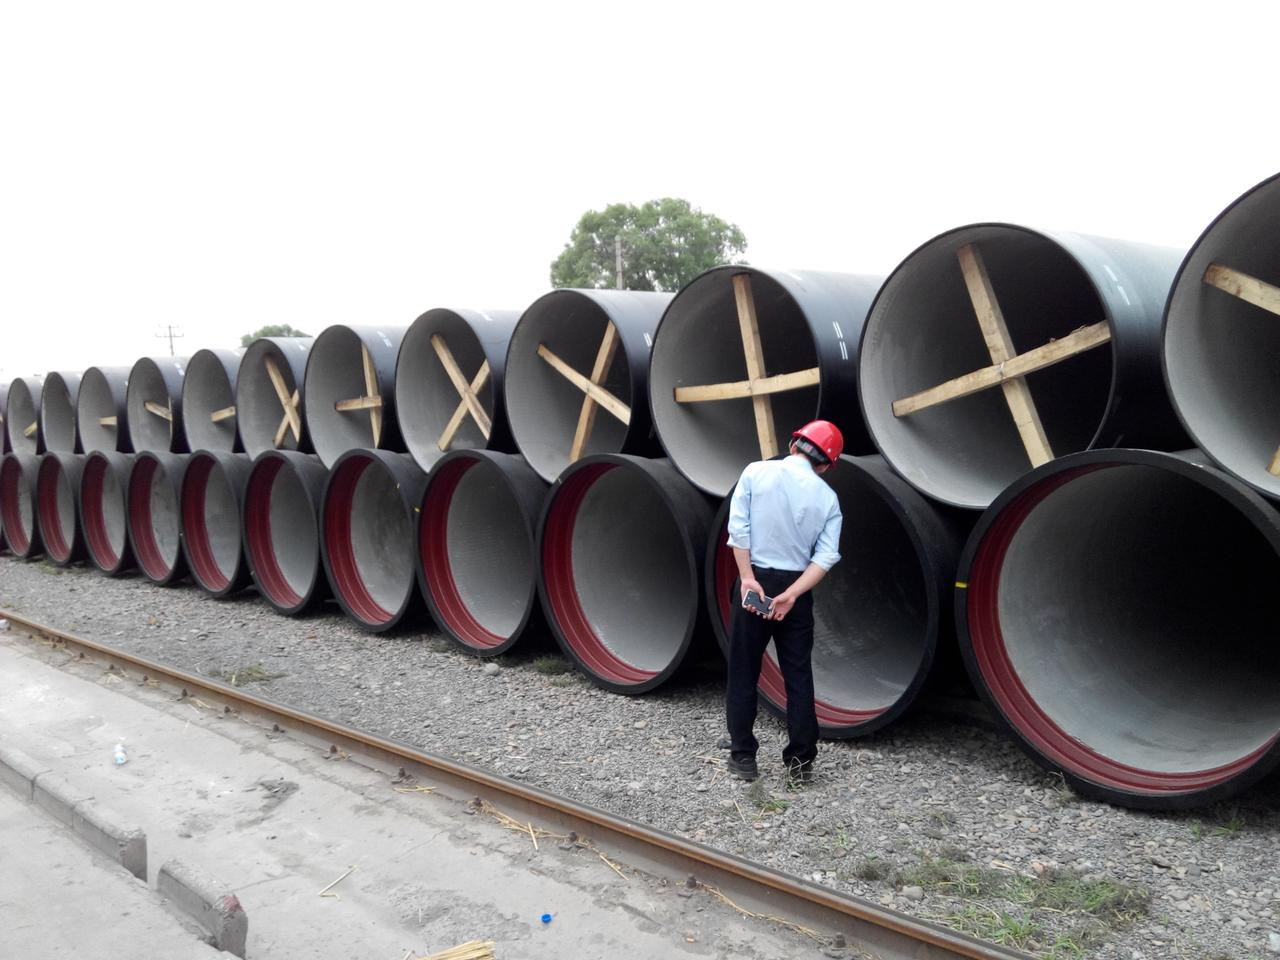 sc 1 th 194 & Ductile Iron Pipes for drinking water project